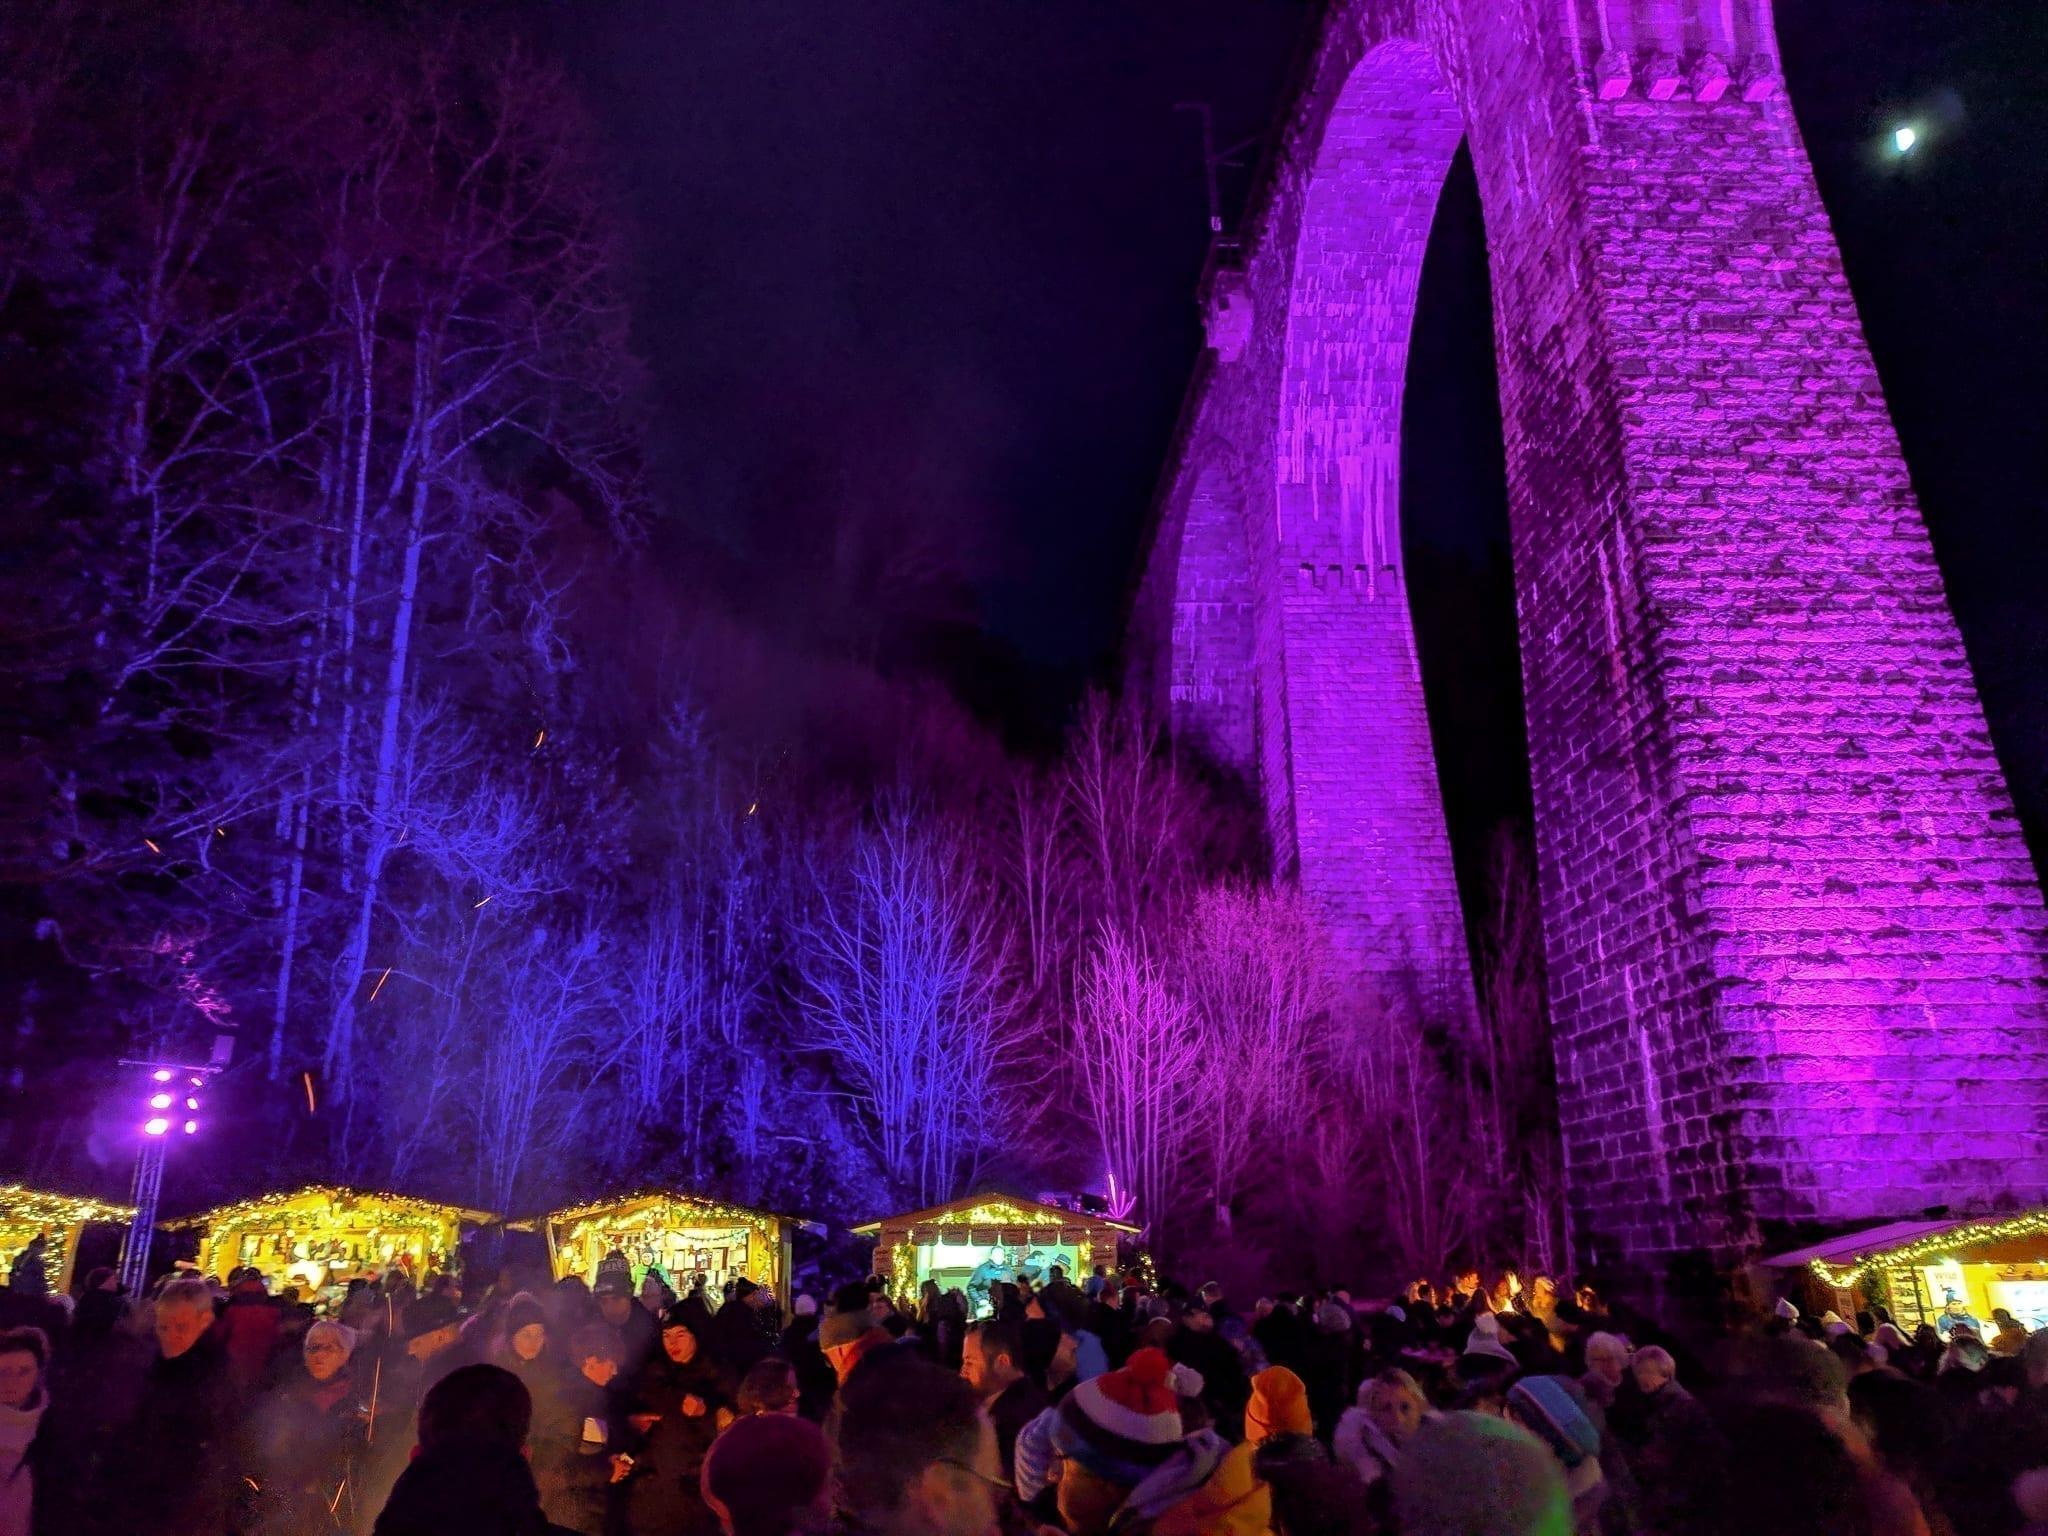 Ravennaschlucht Weihnachtsmarkt, Ravenna Gorge Christmas Markets near Freiburg Germany with a pink illuminated railroad bridge above Christmas stalls.